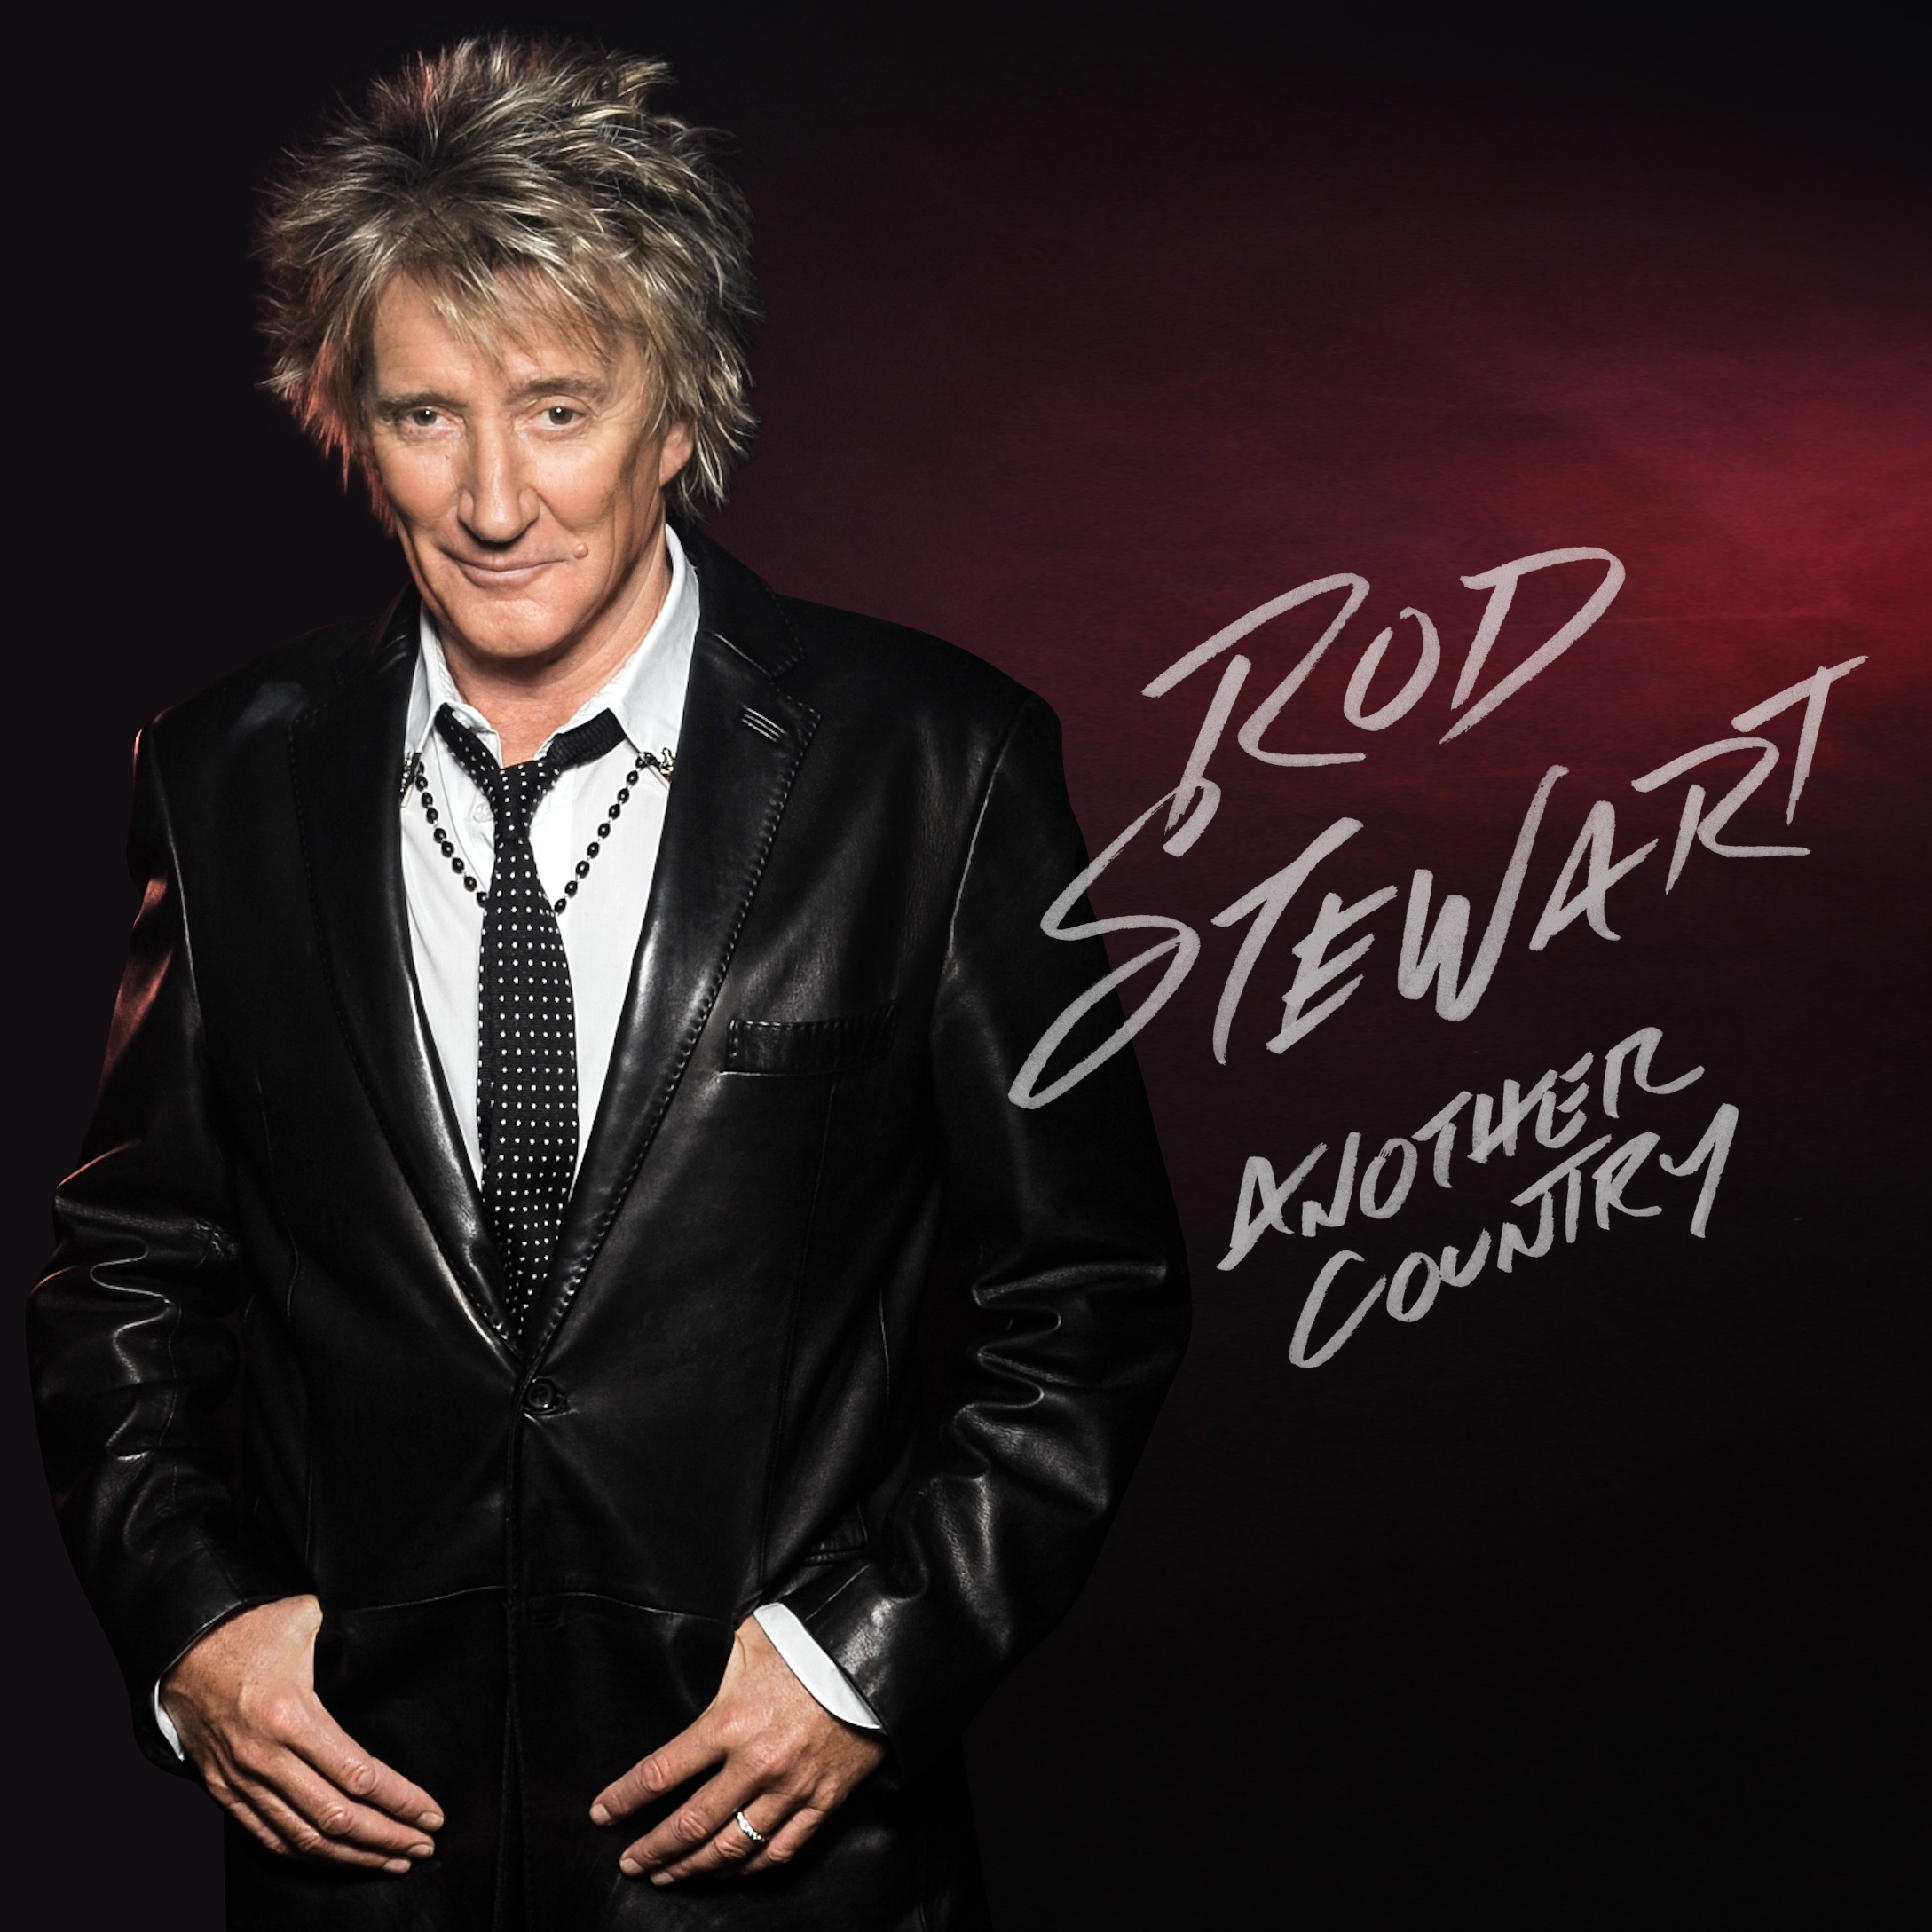 Rod-Stewart-Another-Country-International-Packshot.jpg